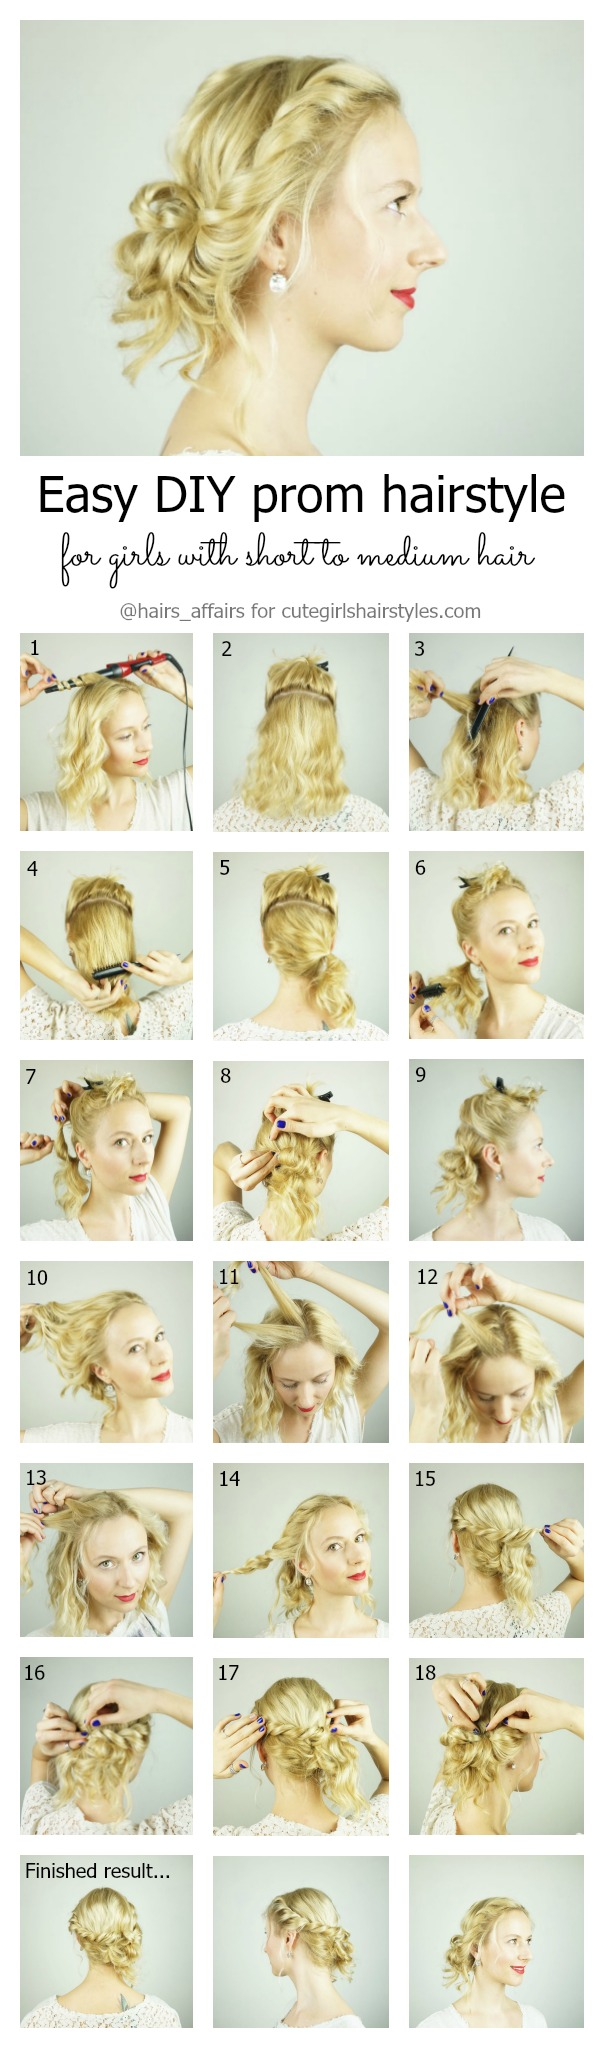 Easy diy prom hairstyle for girls with short to medium hair with prom hairstyles solutioingenieria Gallery